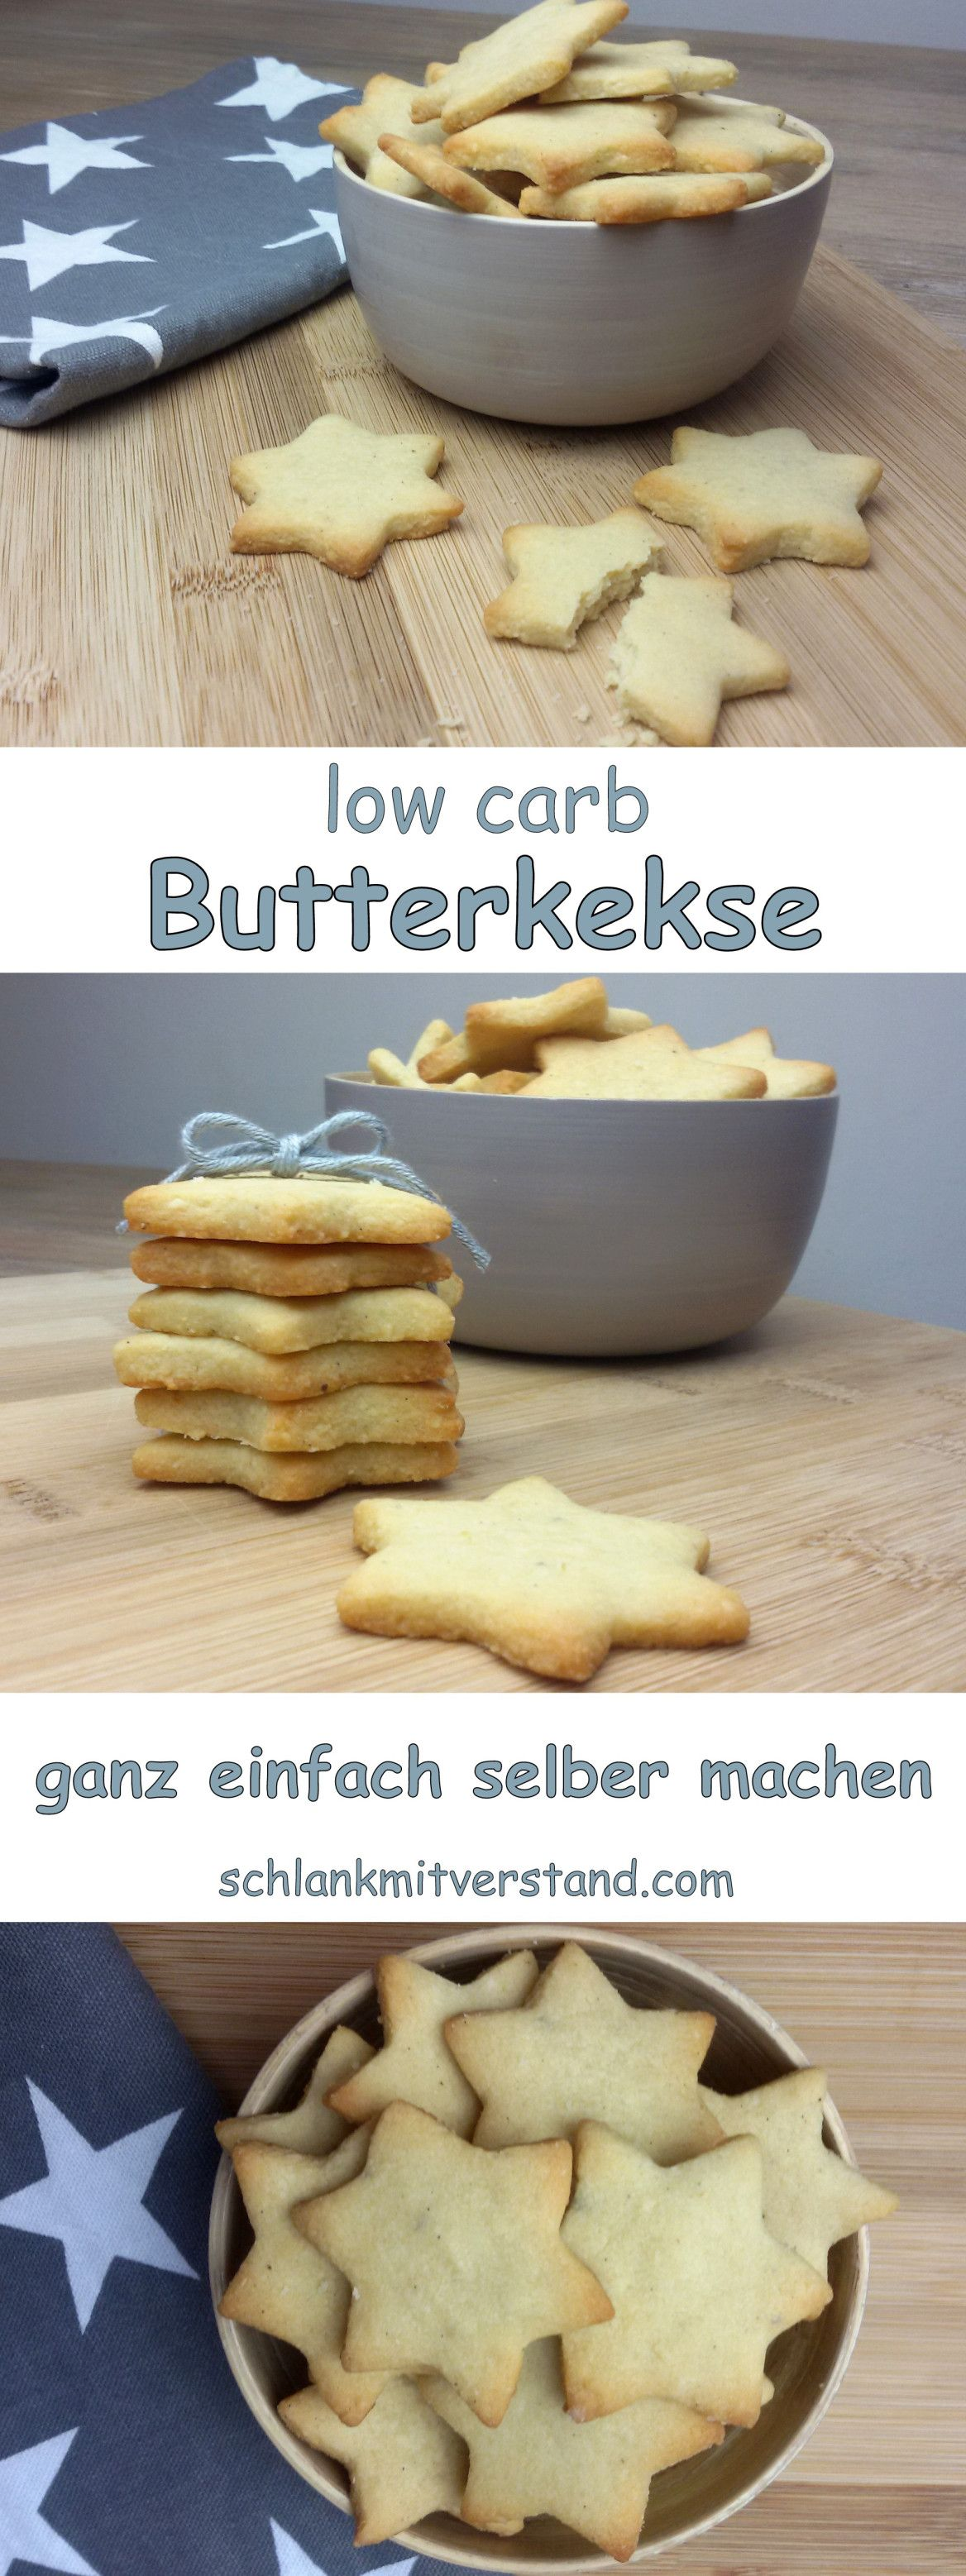 Low Carb Kuchen Ohne Backen Butterkekse Low Carb Low Carb